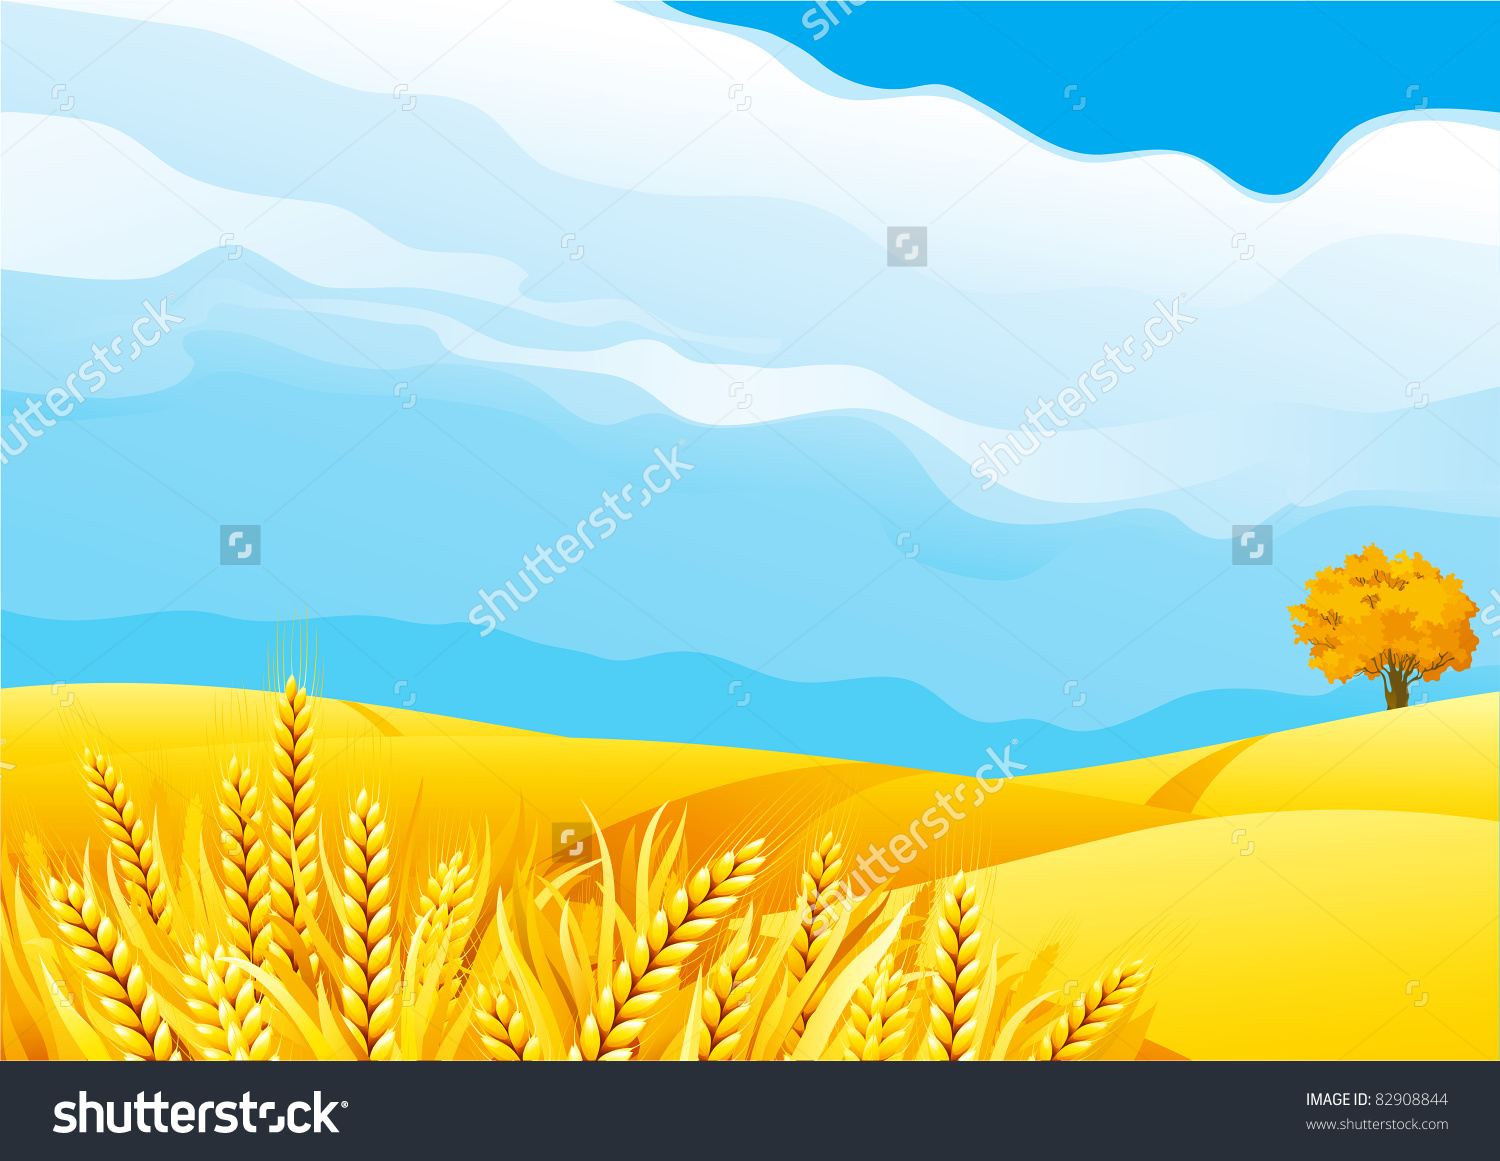 Grain Fields Fall Landscape Yellow Grain Stock Vector 82908844.